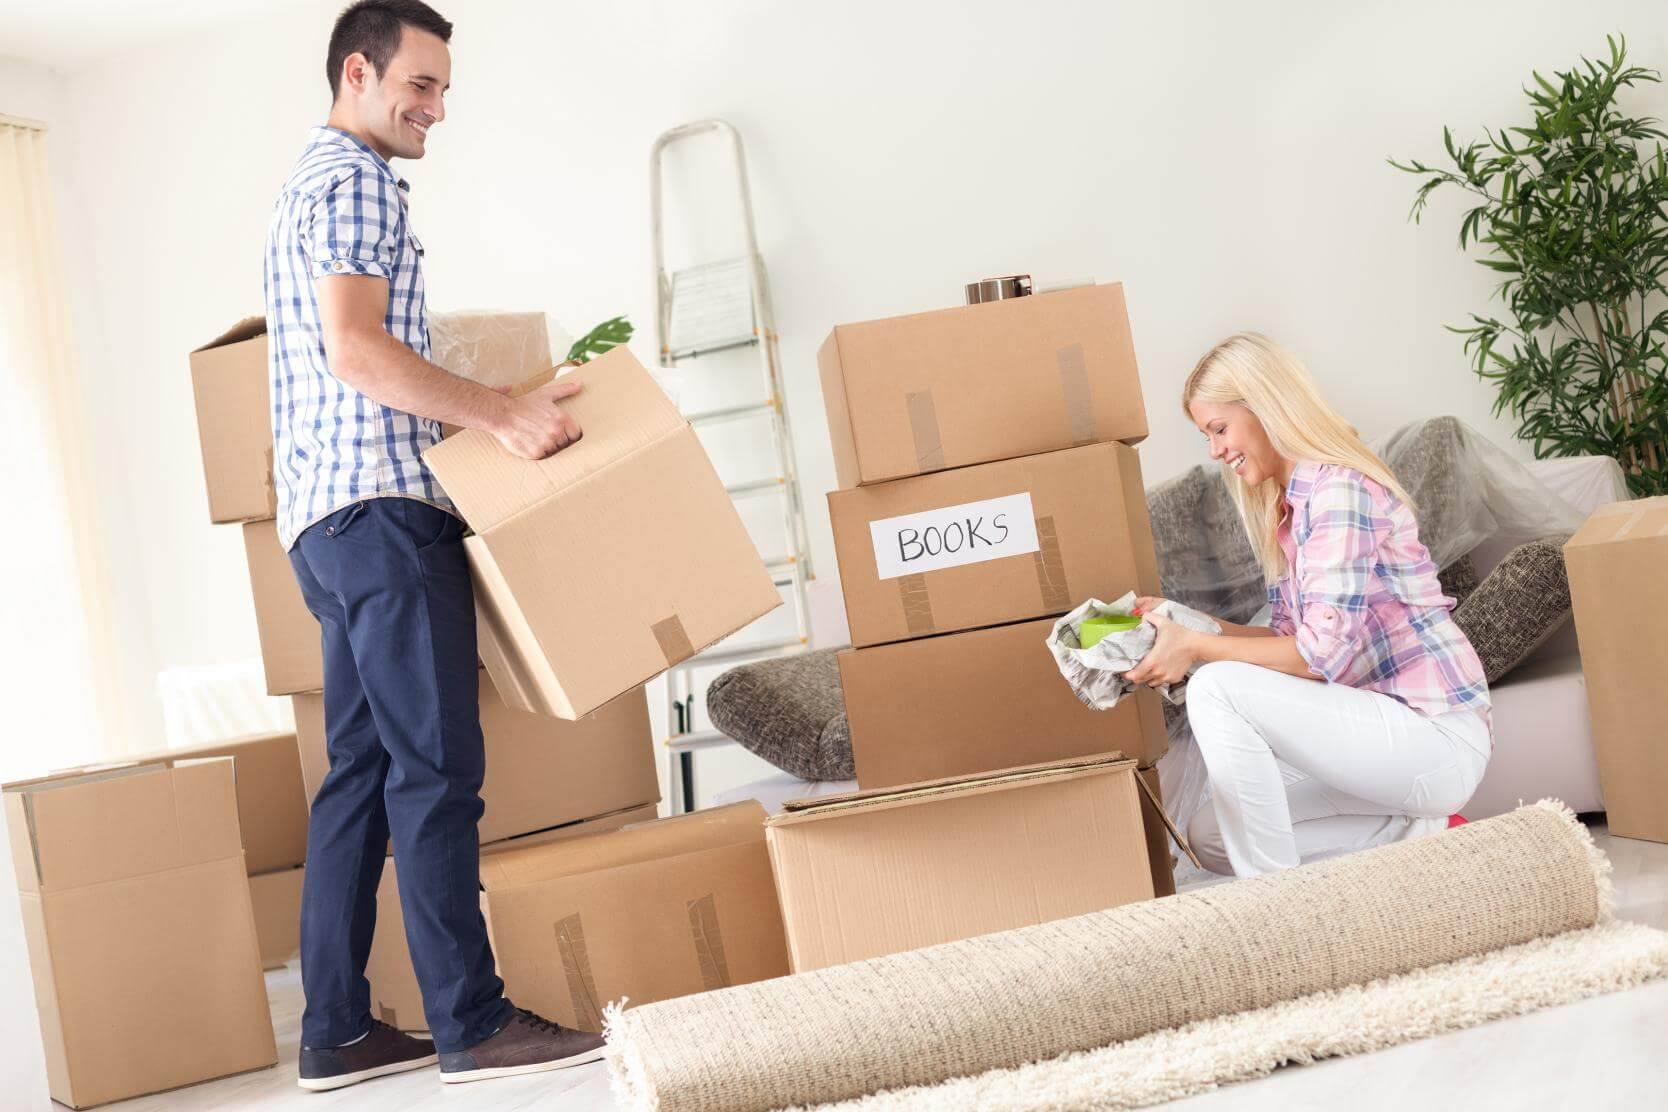 Hire A Piano Mover - Protect Your Valuable Possessions